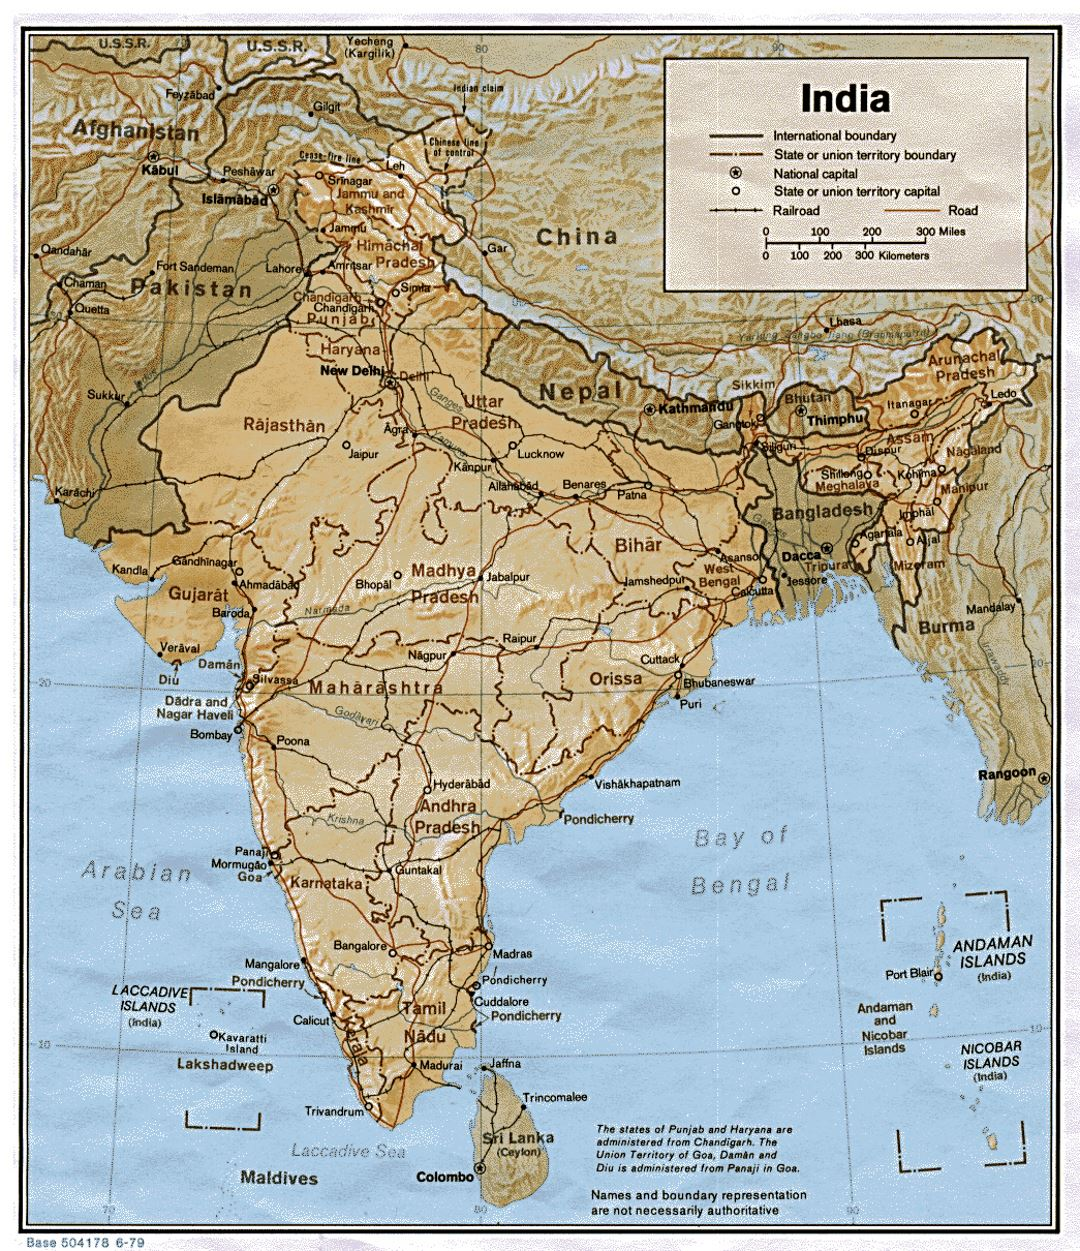 Detailed political and administrative map of India with relief, roads, railroads and major cities - 1979